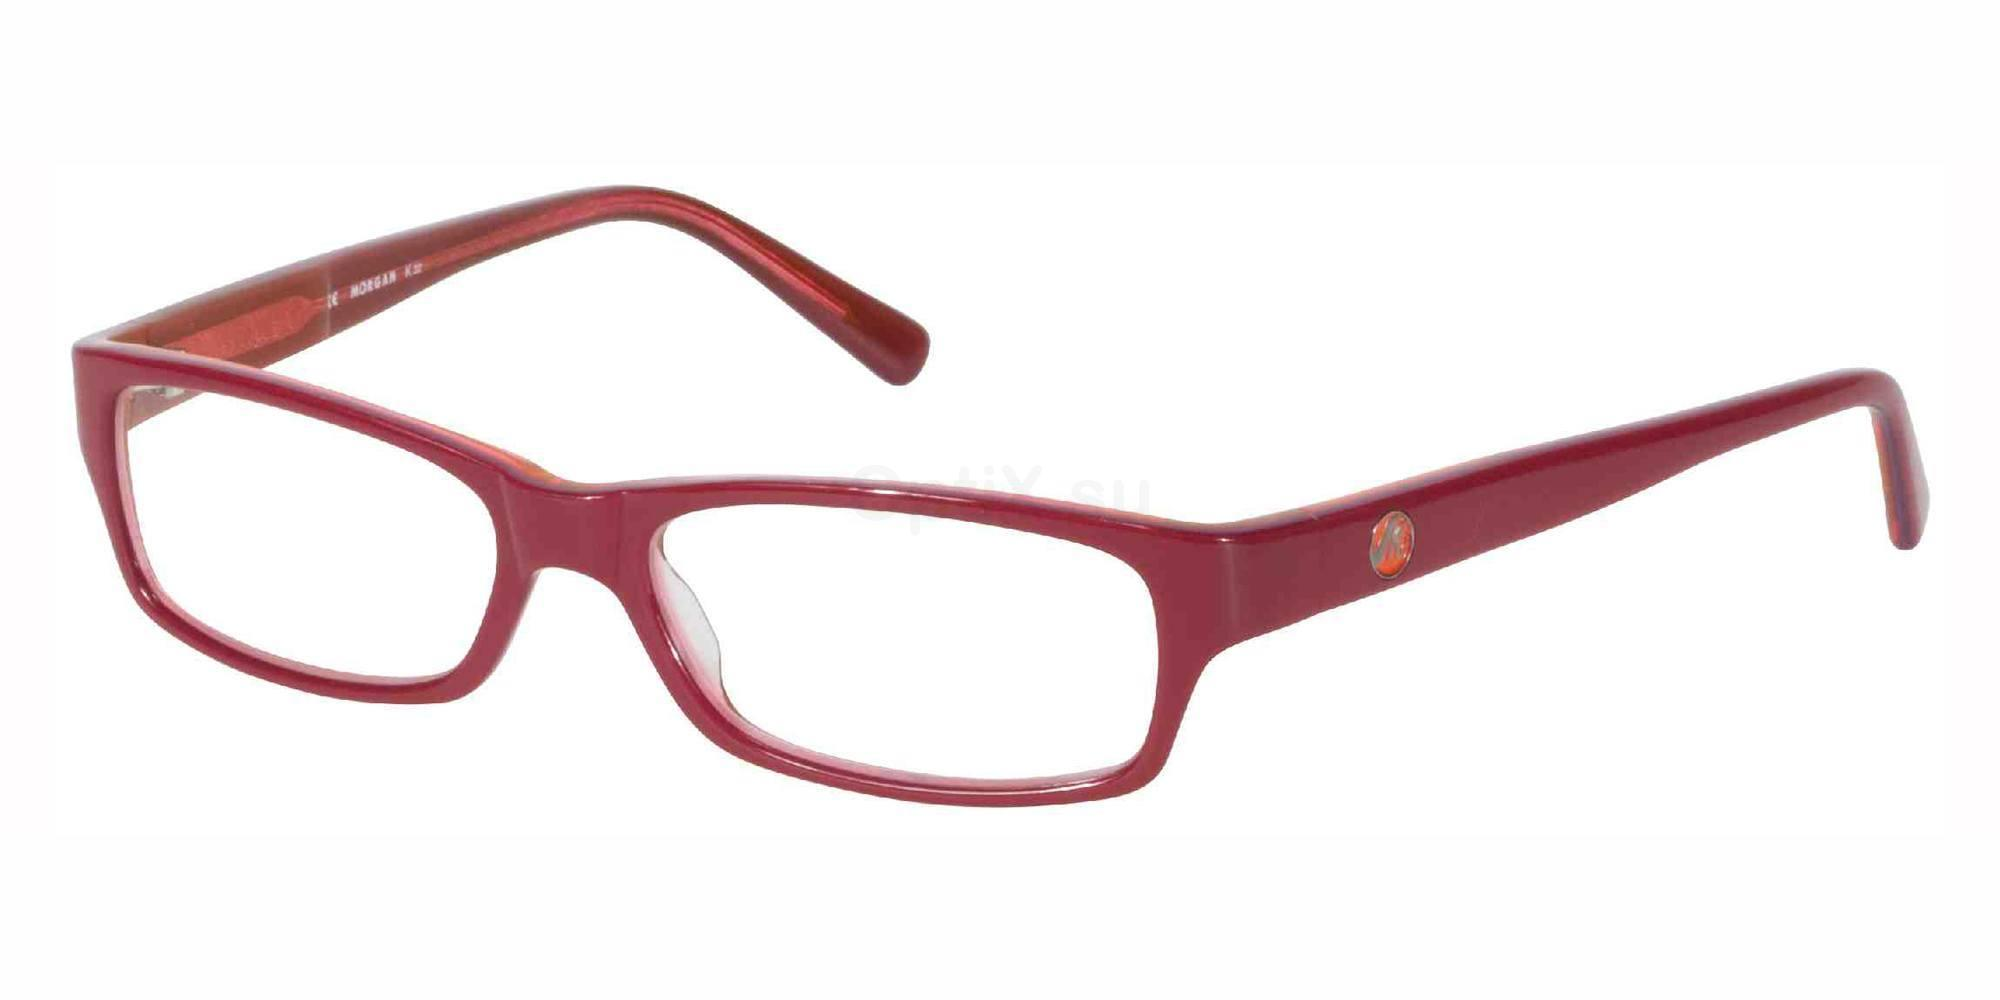 6329 201043 , MORGAN Eyewear